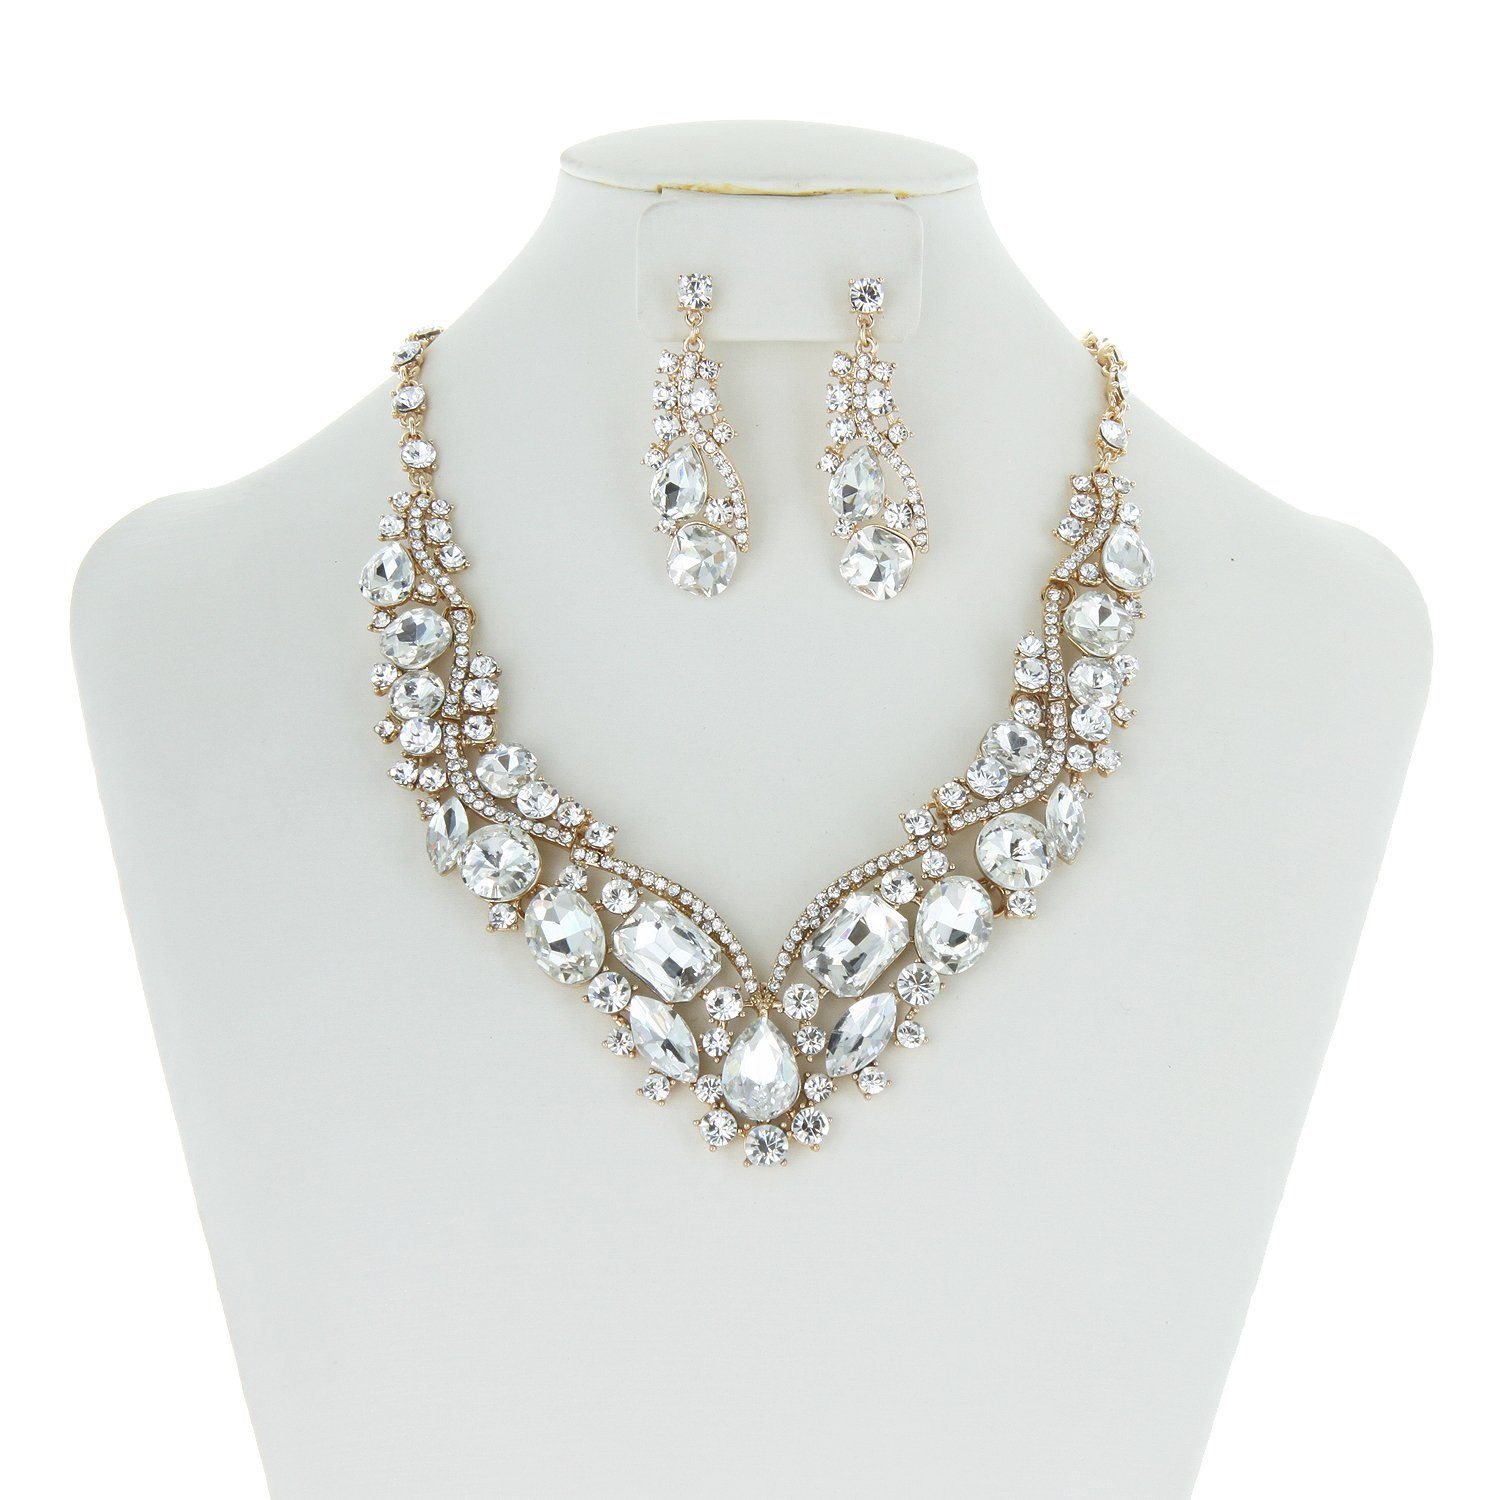 SP Sophia Collection Women's Wedding Bridal Austrian Crystal Necklace and Earrings Jewelry Set in Gold